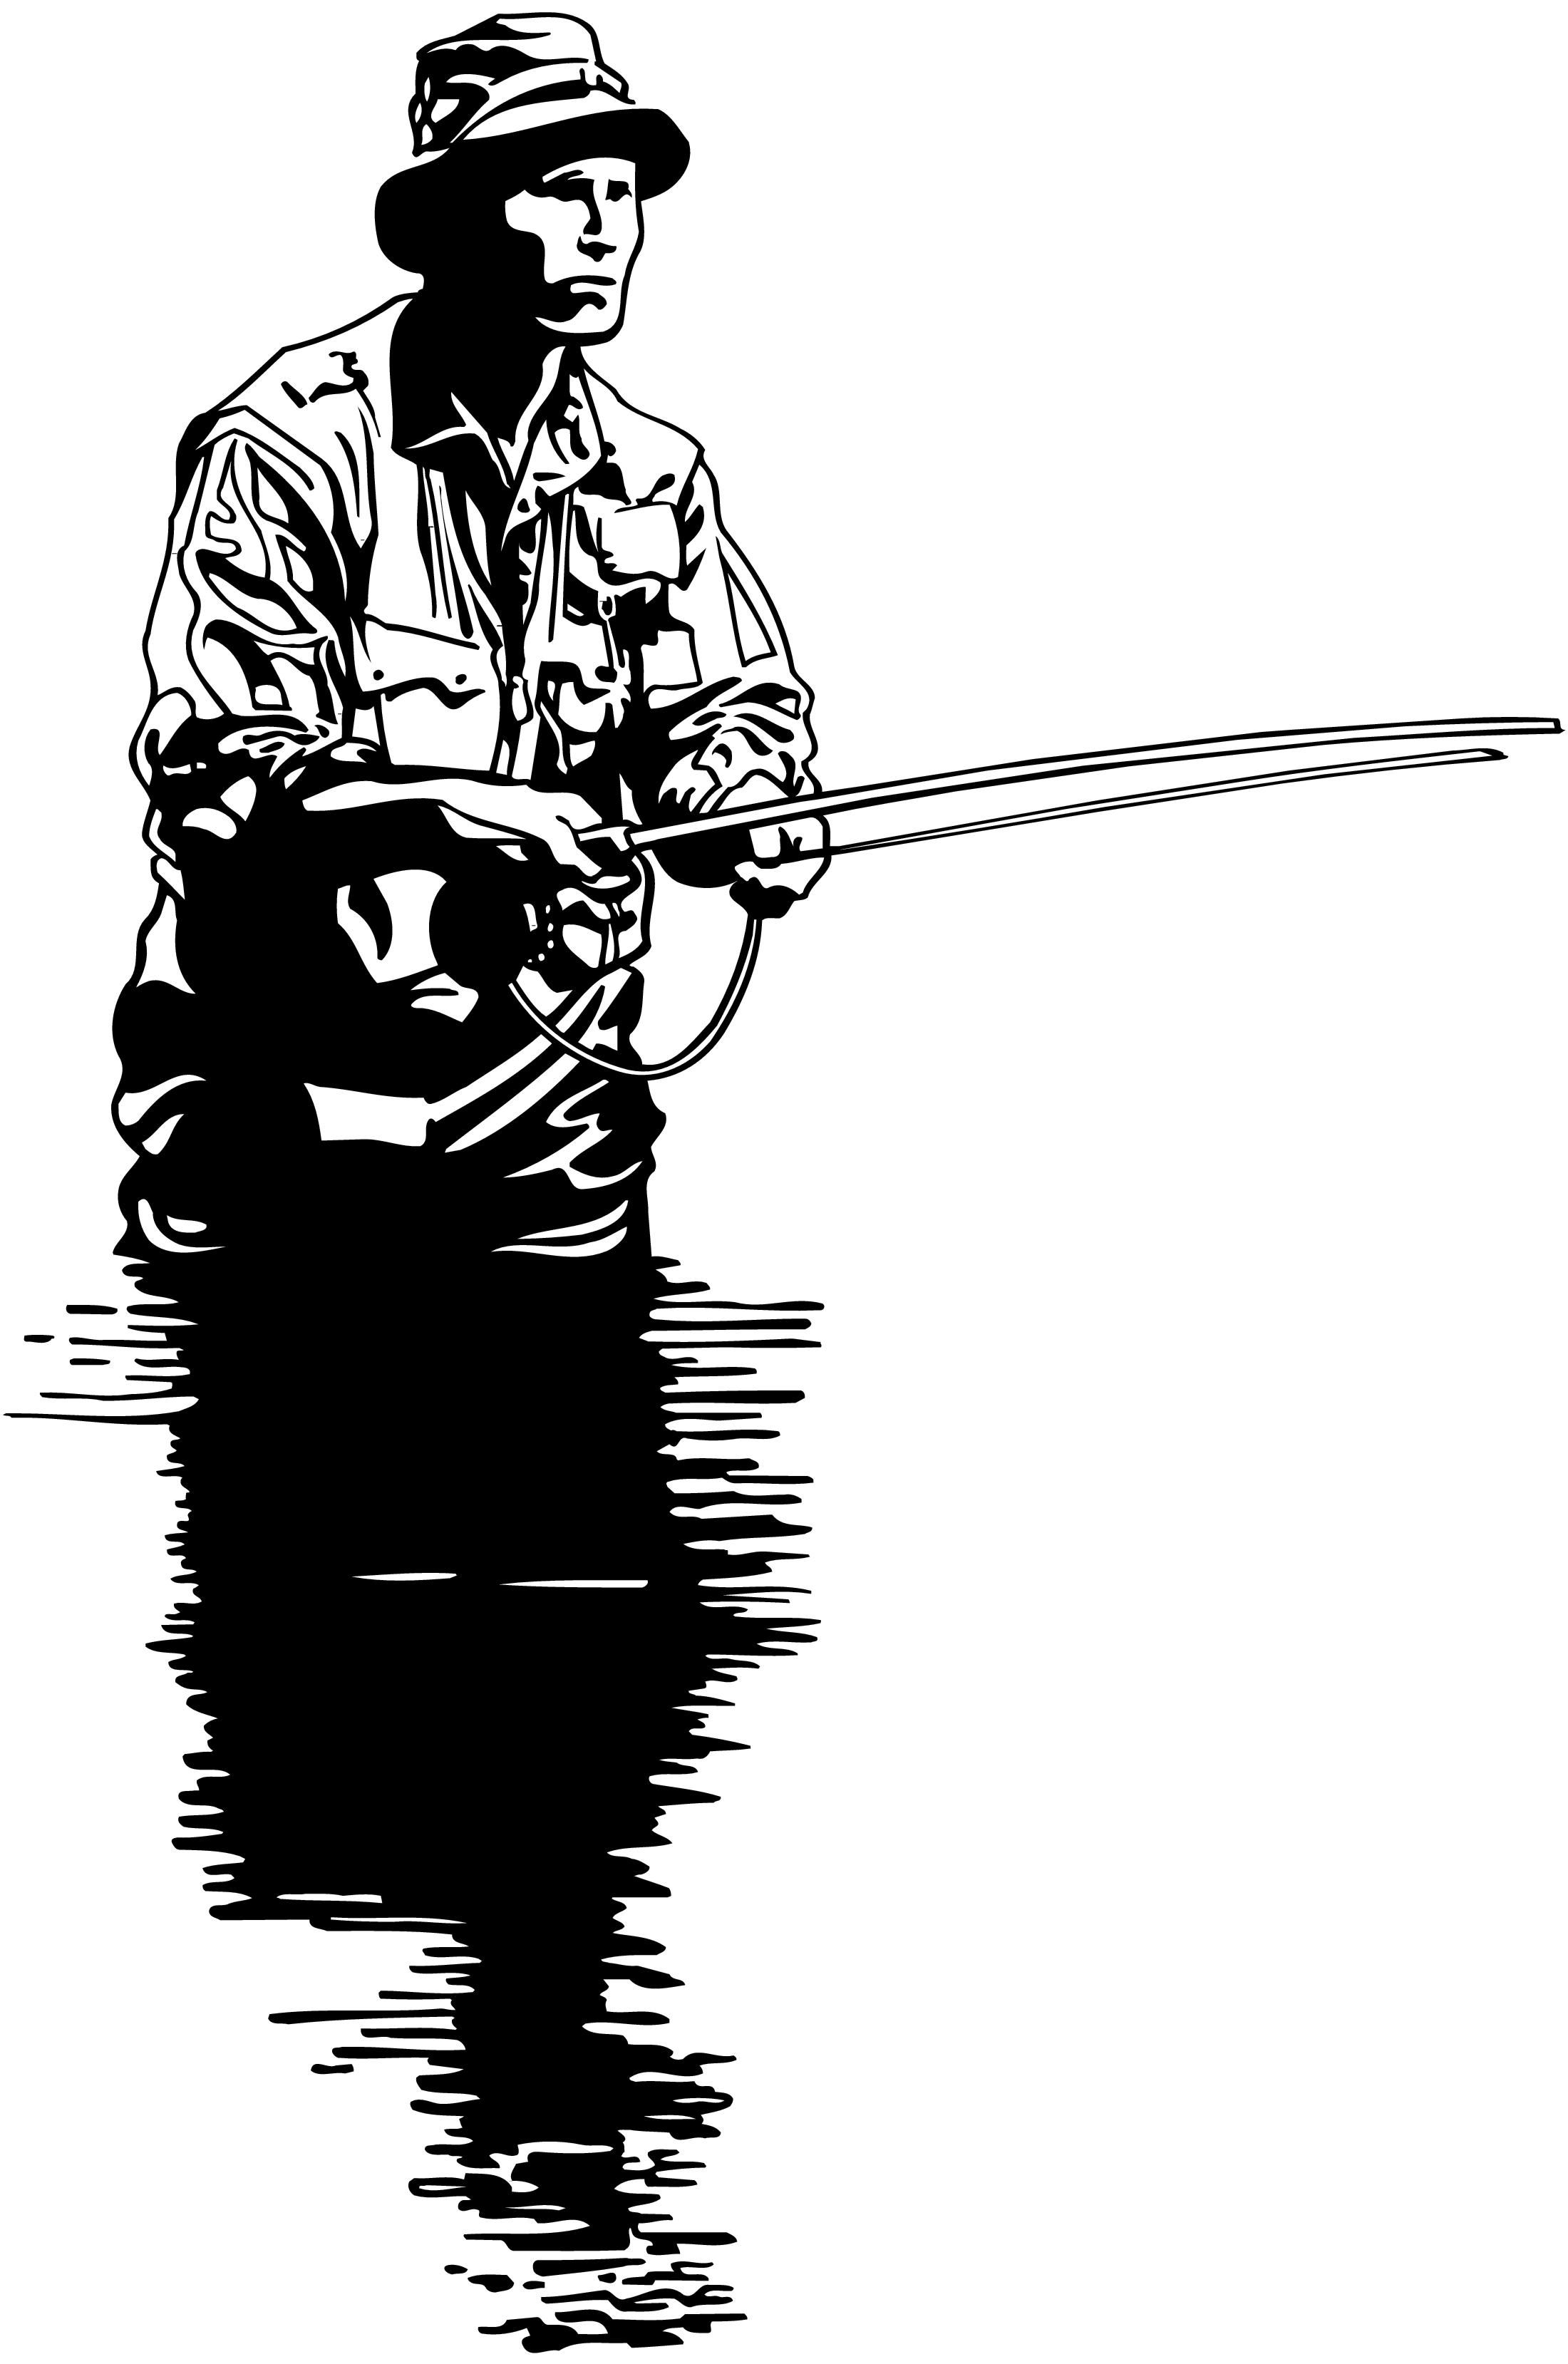 fisherman vector cartoon art designs compilation we are currently seeking graphic designers and sales people to join our cartoon design cartoon art vector art fisherman vector cartoon art designs